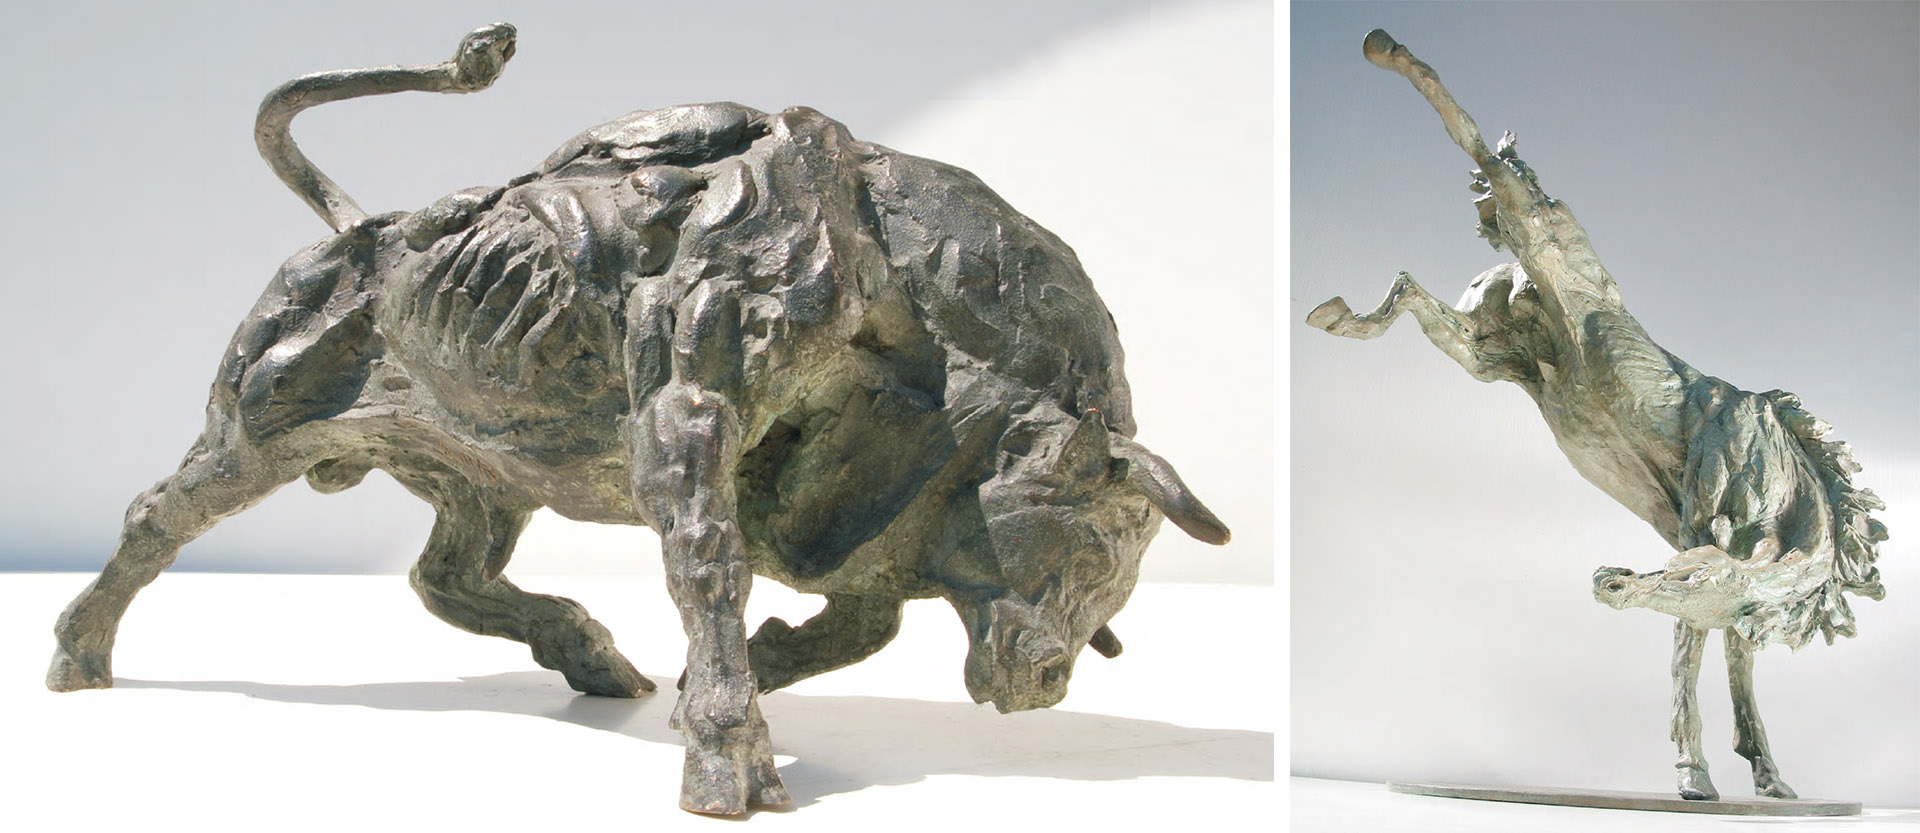 statues-of-animals-sculptures-horses-bulls-in-bronze-cover01